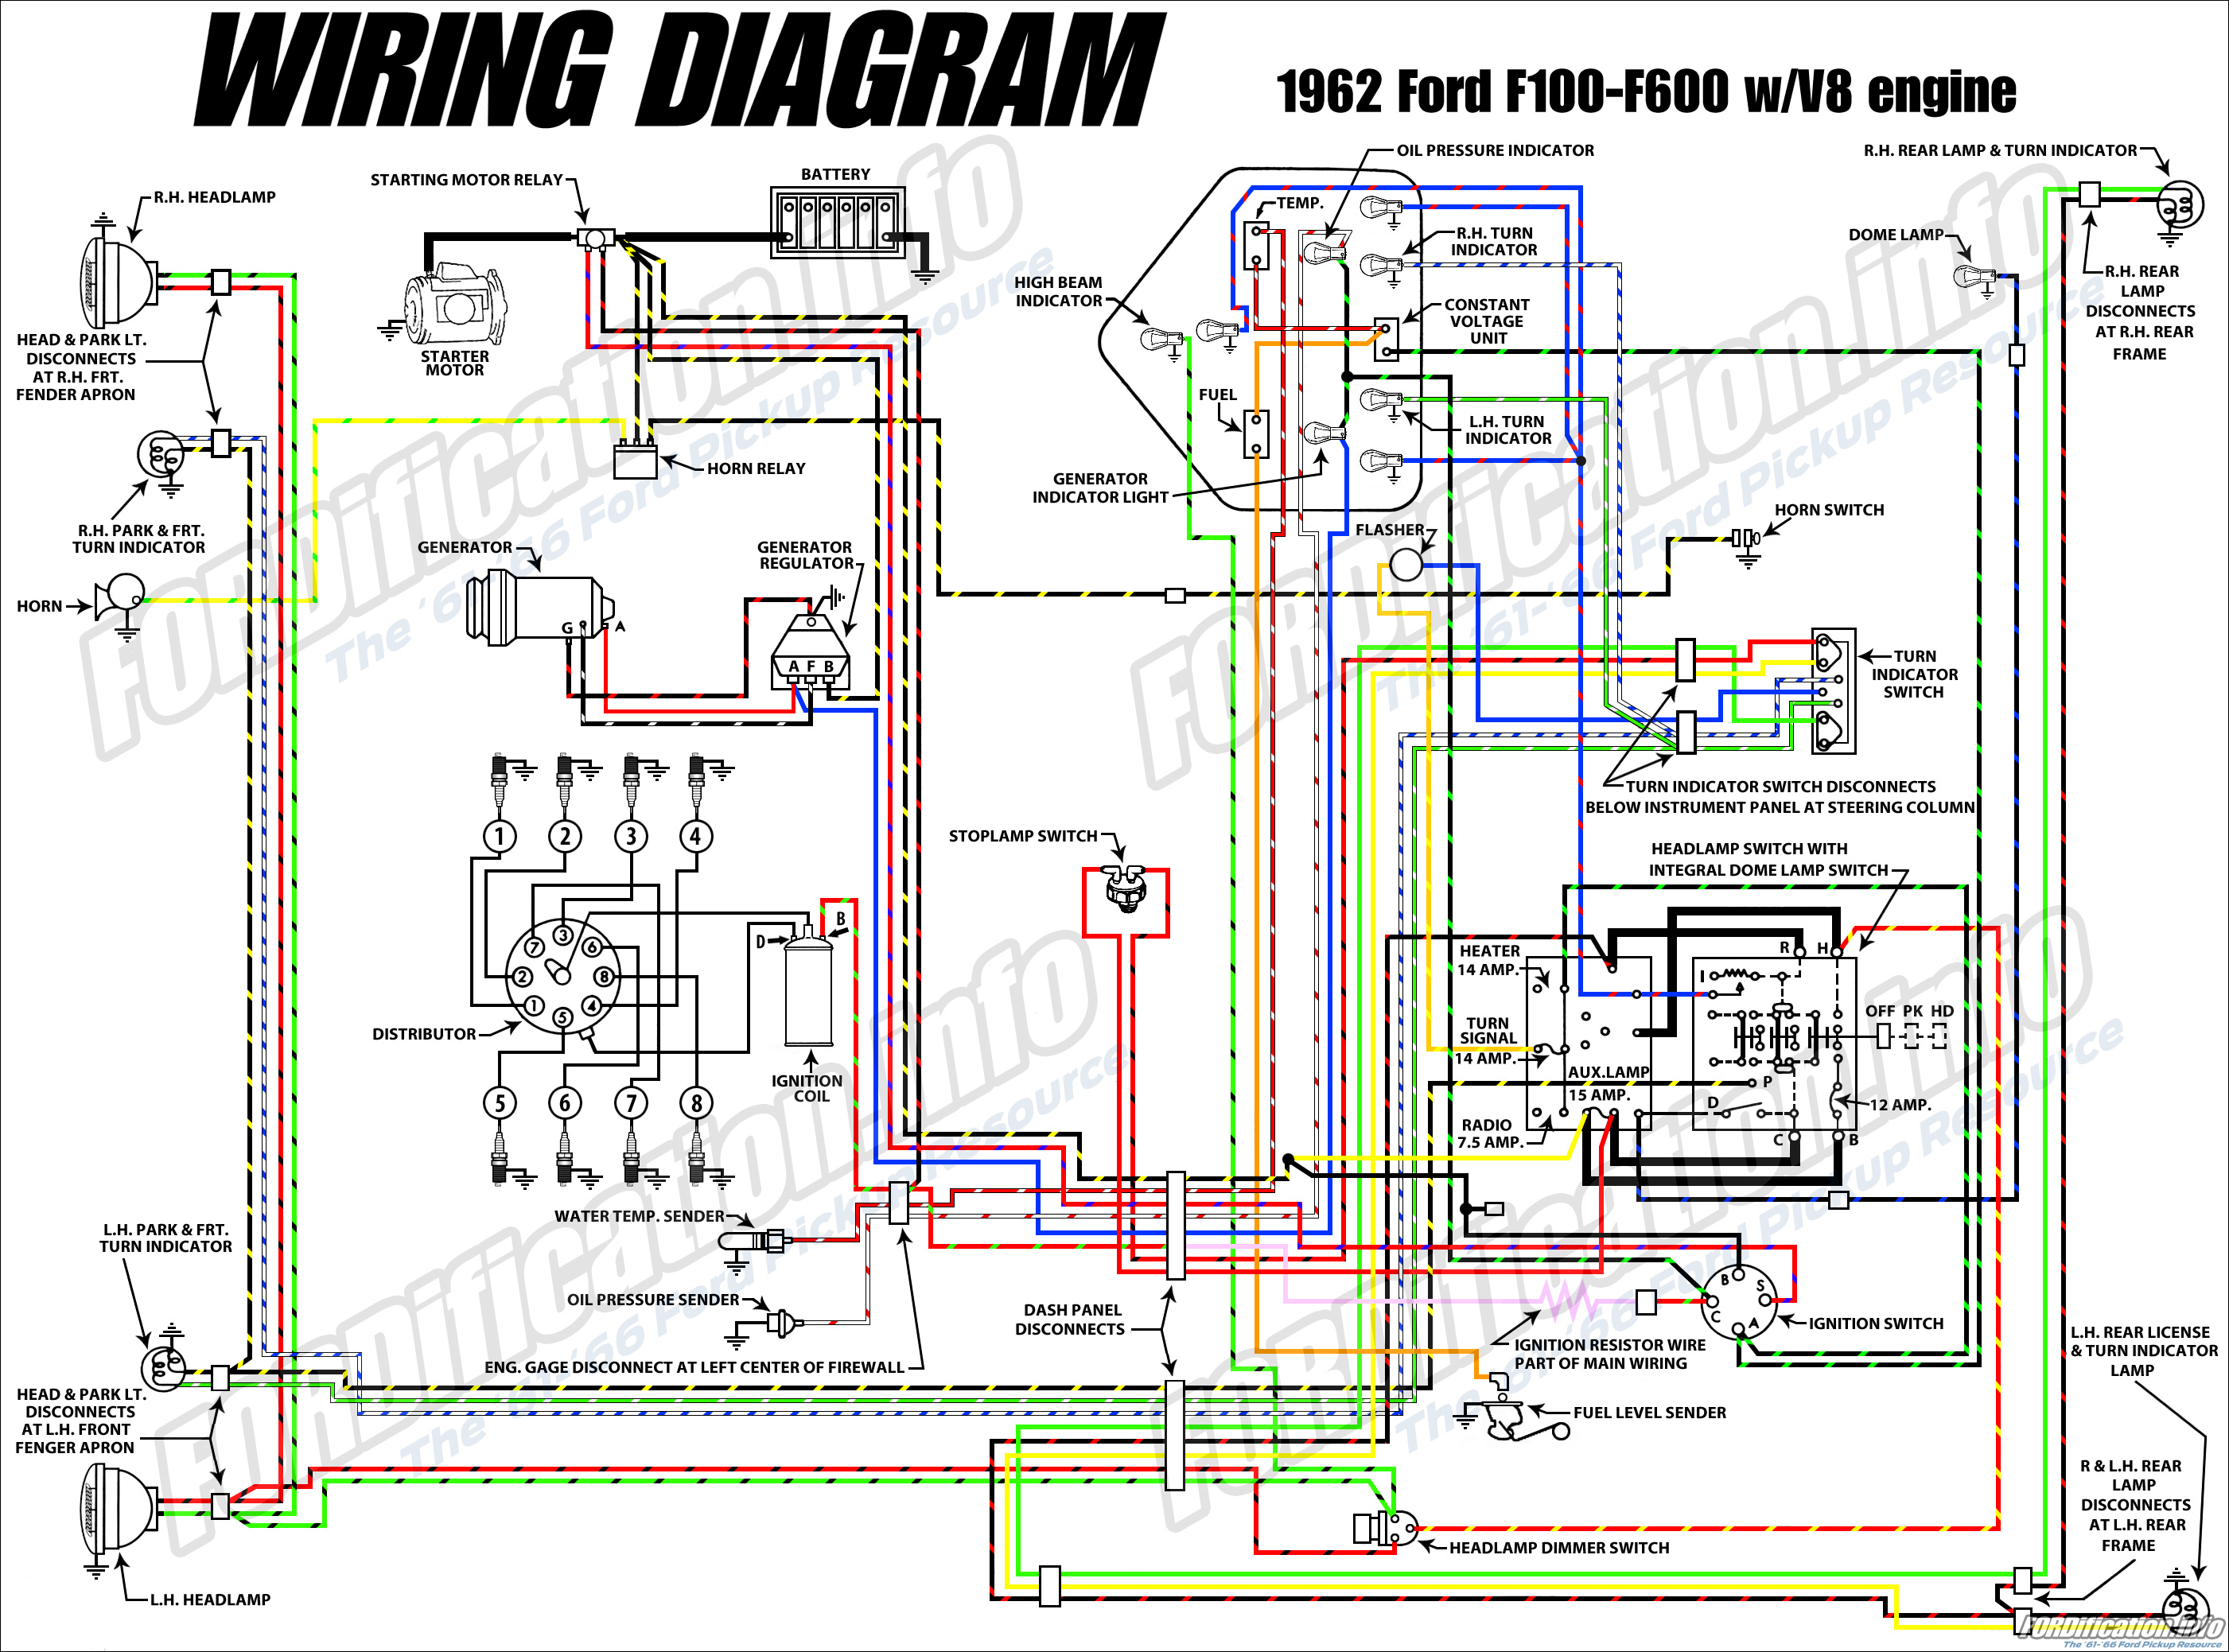 1965 Ford Truck Wiring Diagram Data 65 F100 Diagrams 1966 1975